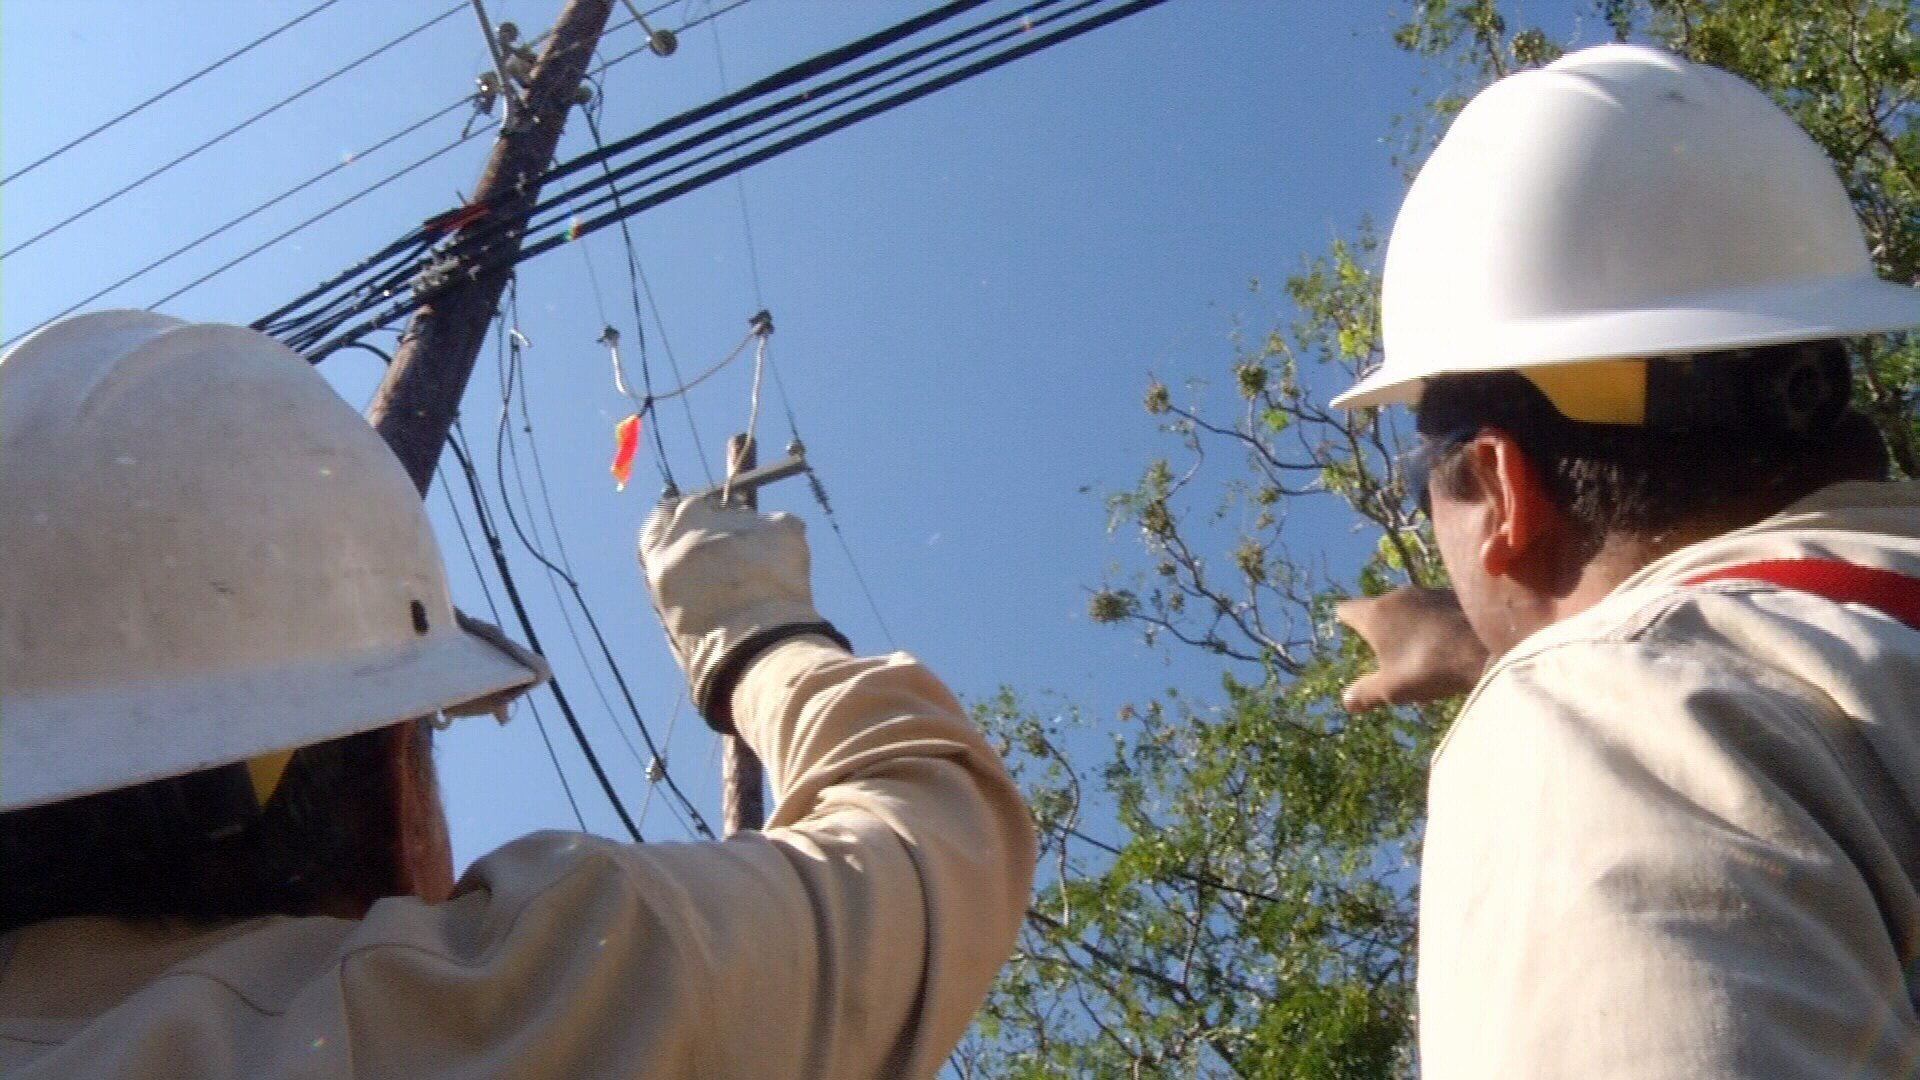 AEP Texas has crews from all over the United States helping to restore power here in the Coastal Bend.